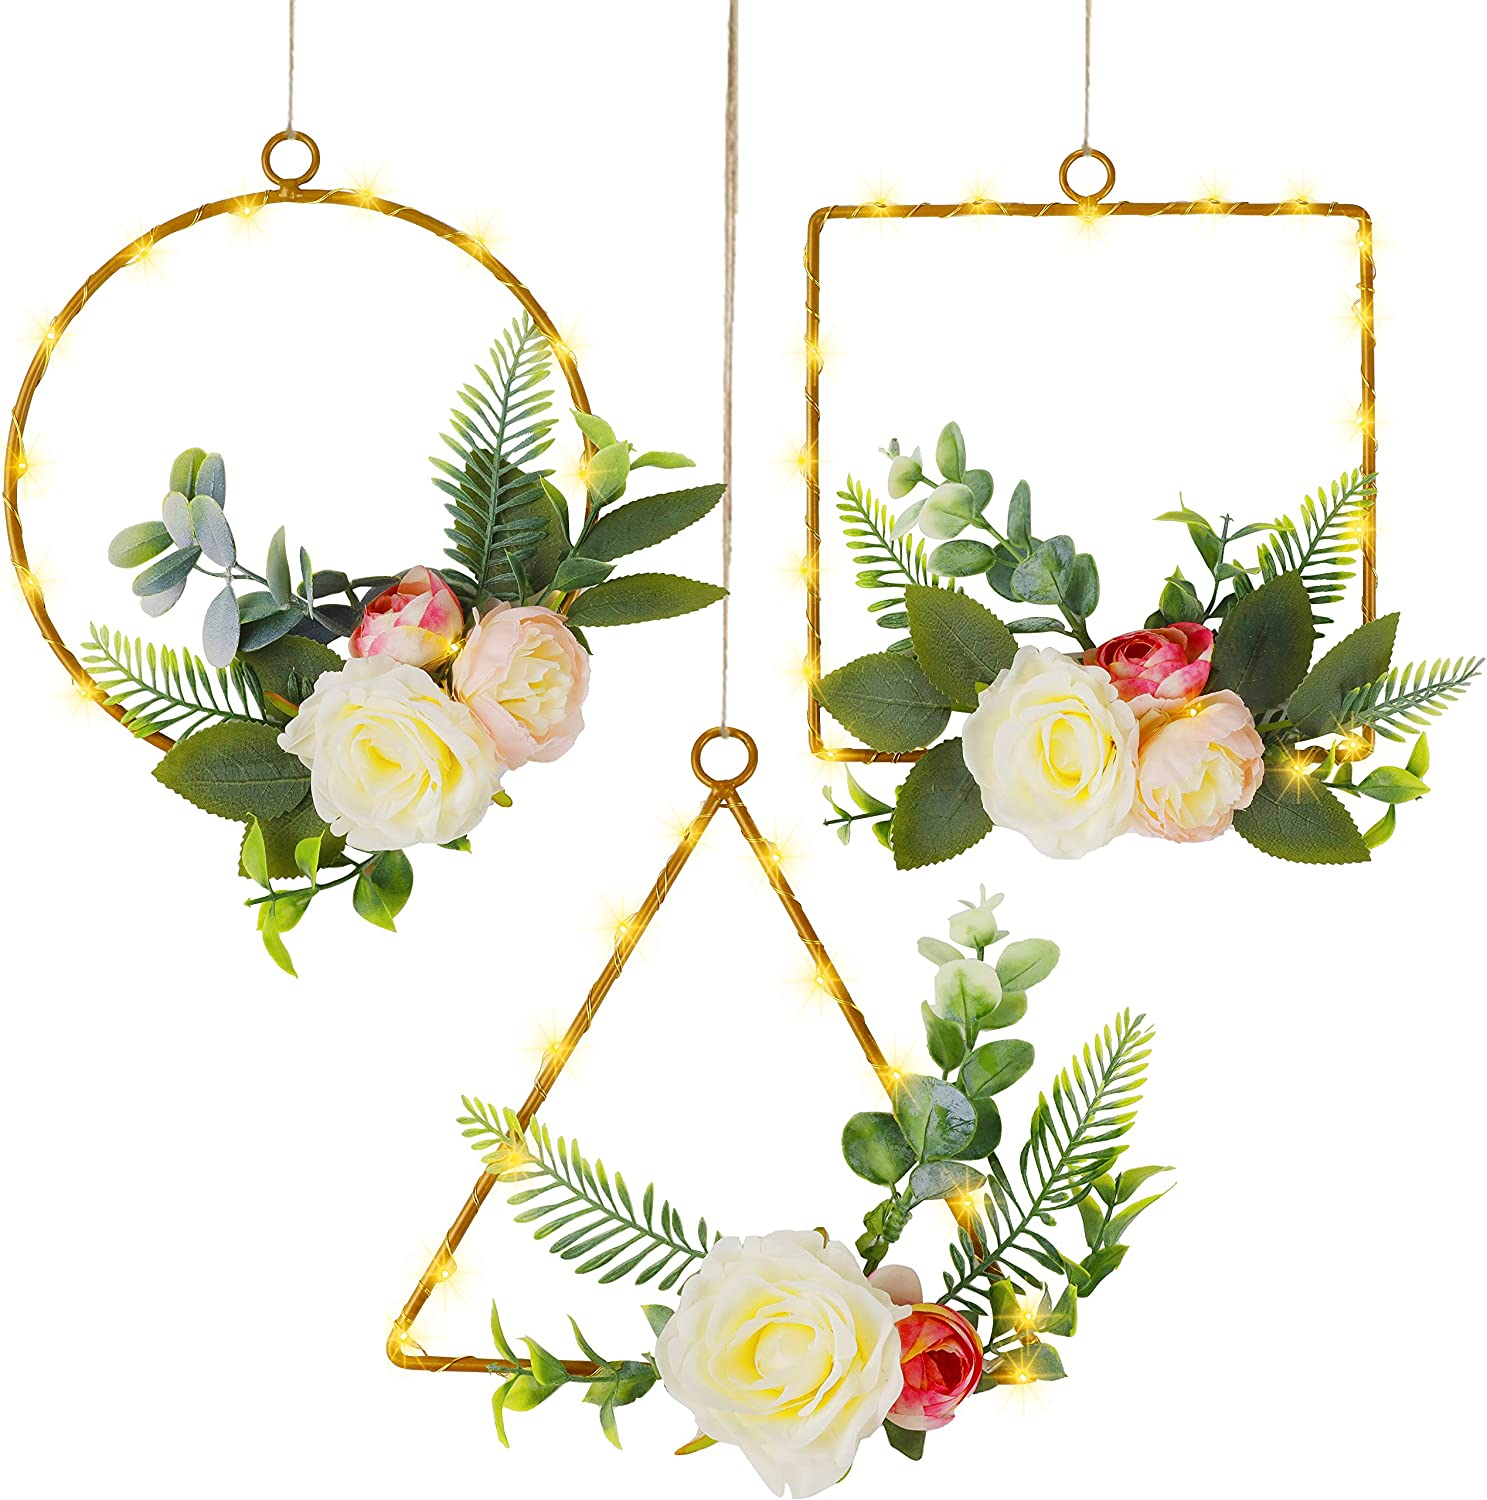 Twinkle Star Set of 3 Lighted Floral Hoop Wreath, Artificial Peony Flower Eucalyptus Wreath with 70 LED Copper Lights Battery Powered, Hanging Vintage Wall Art for Wending Party Living Room, Bathroom